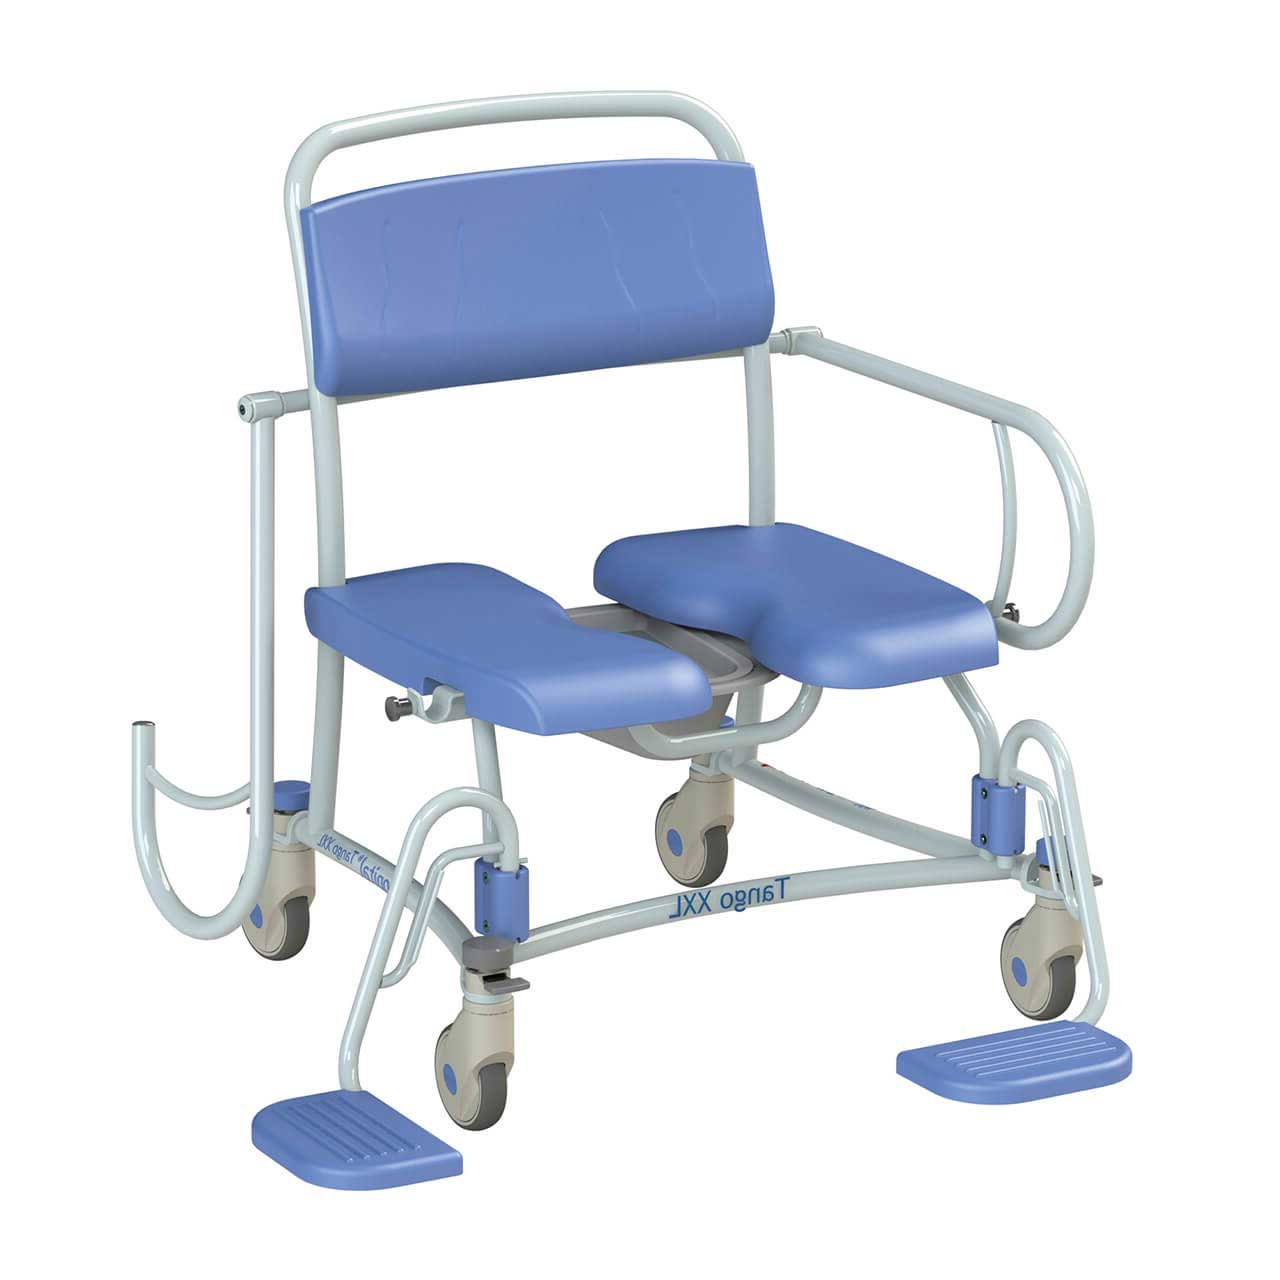 Bariatric XXL Shower Commode Chair for hire or sale